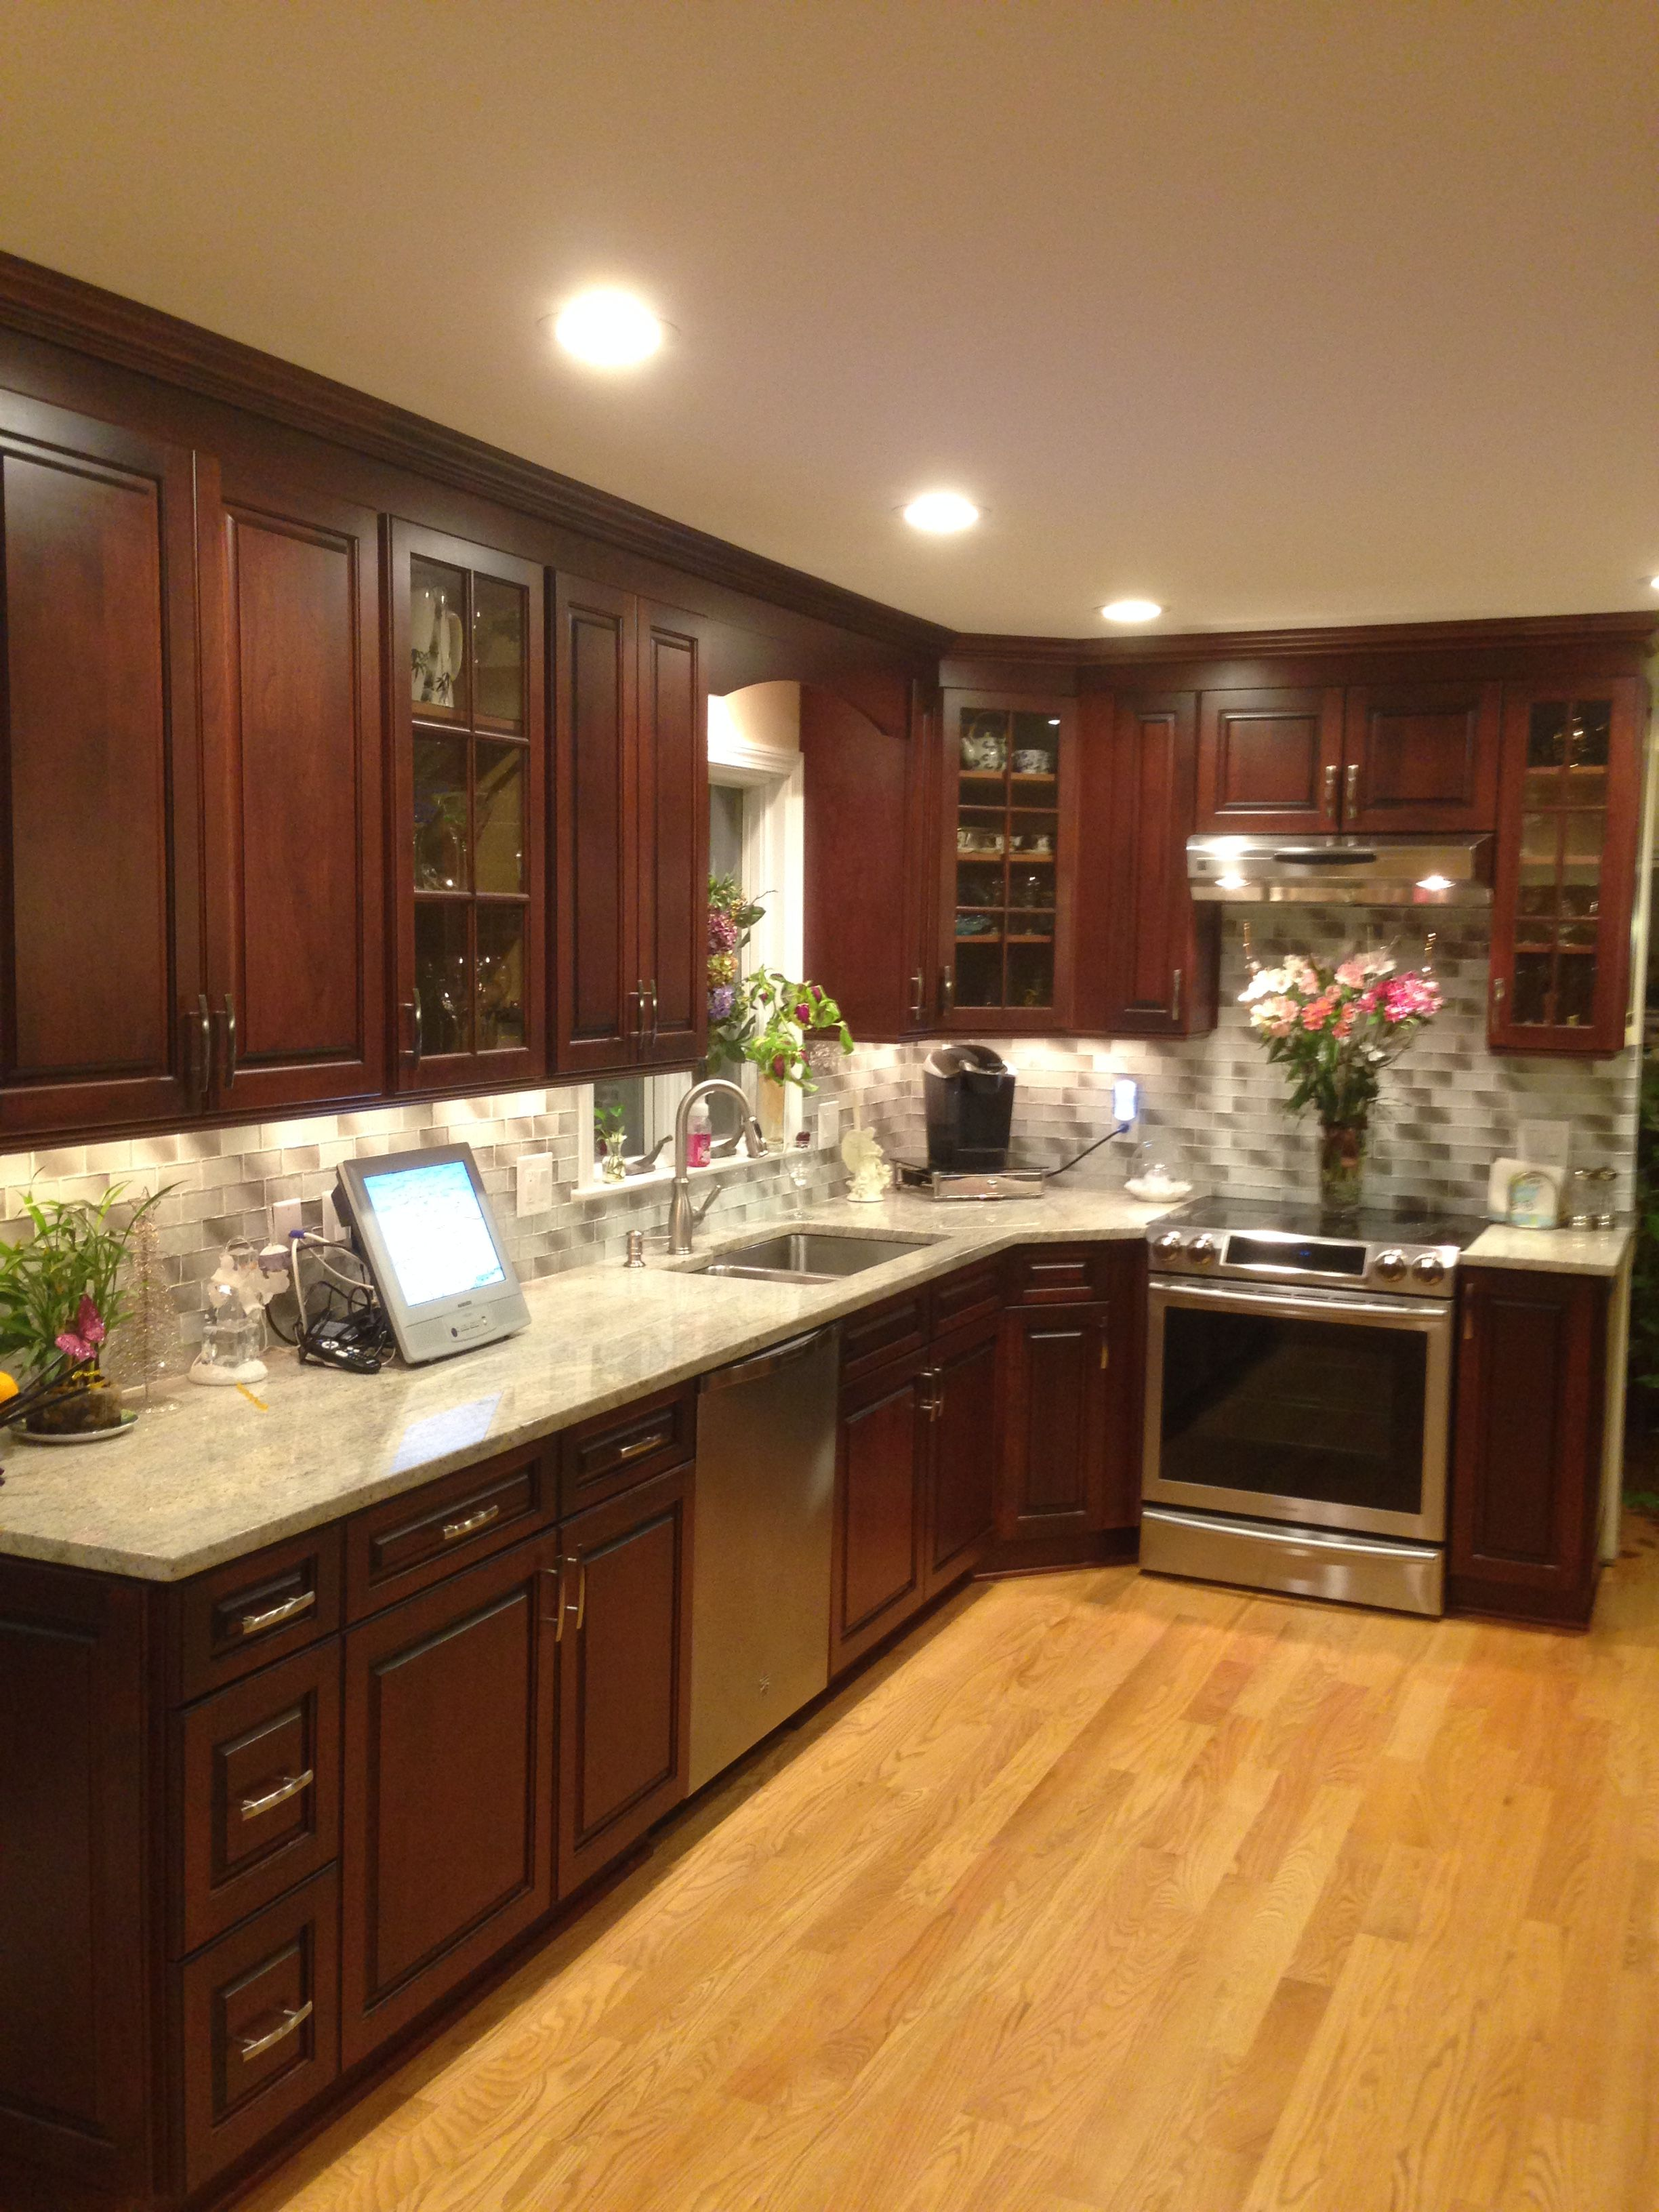 check out this beautiful traditional kitchen we did r dconcepts kitchen remodel kitchen on r kitchen cabinets id=87539